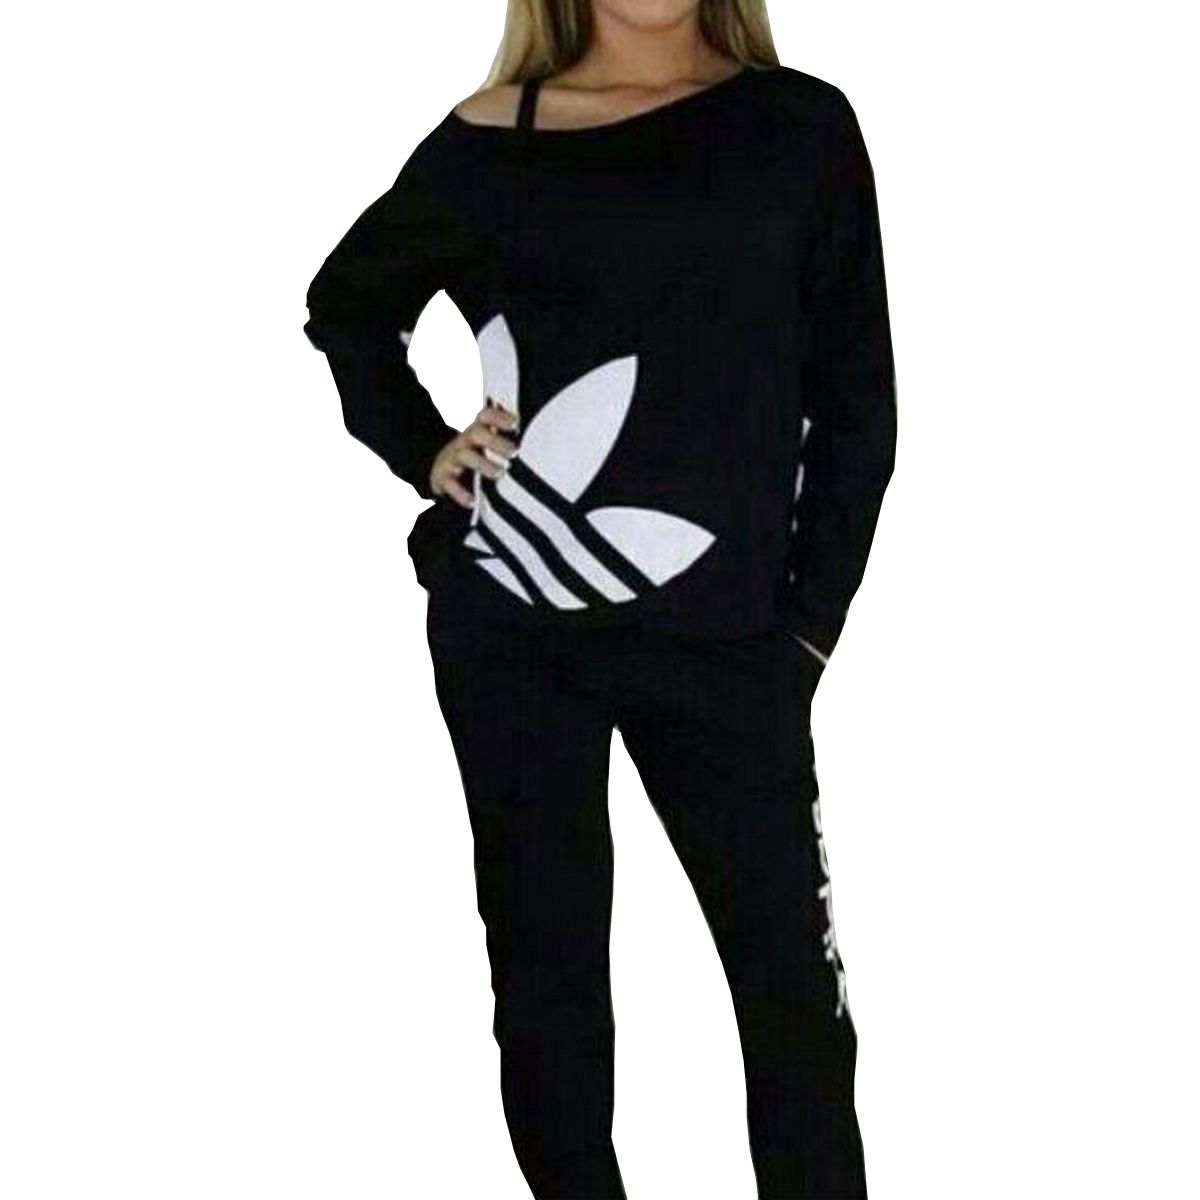 de82c1ed376 New Season Adidas Neon Series Women Tracksuit cotton material, comfortable,  multiple neon colors made in Europe, European sizes.